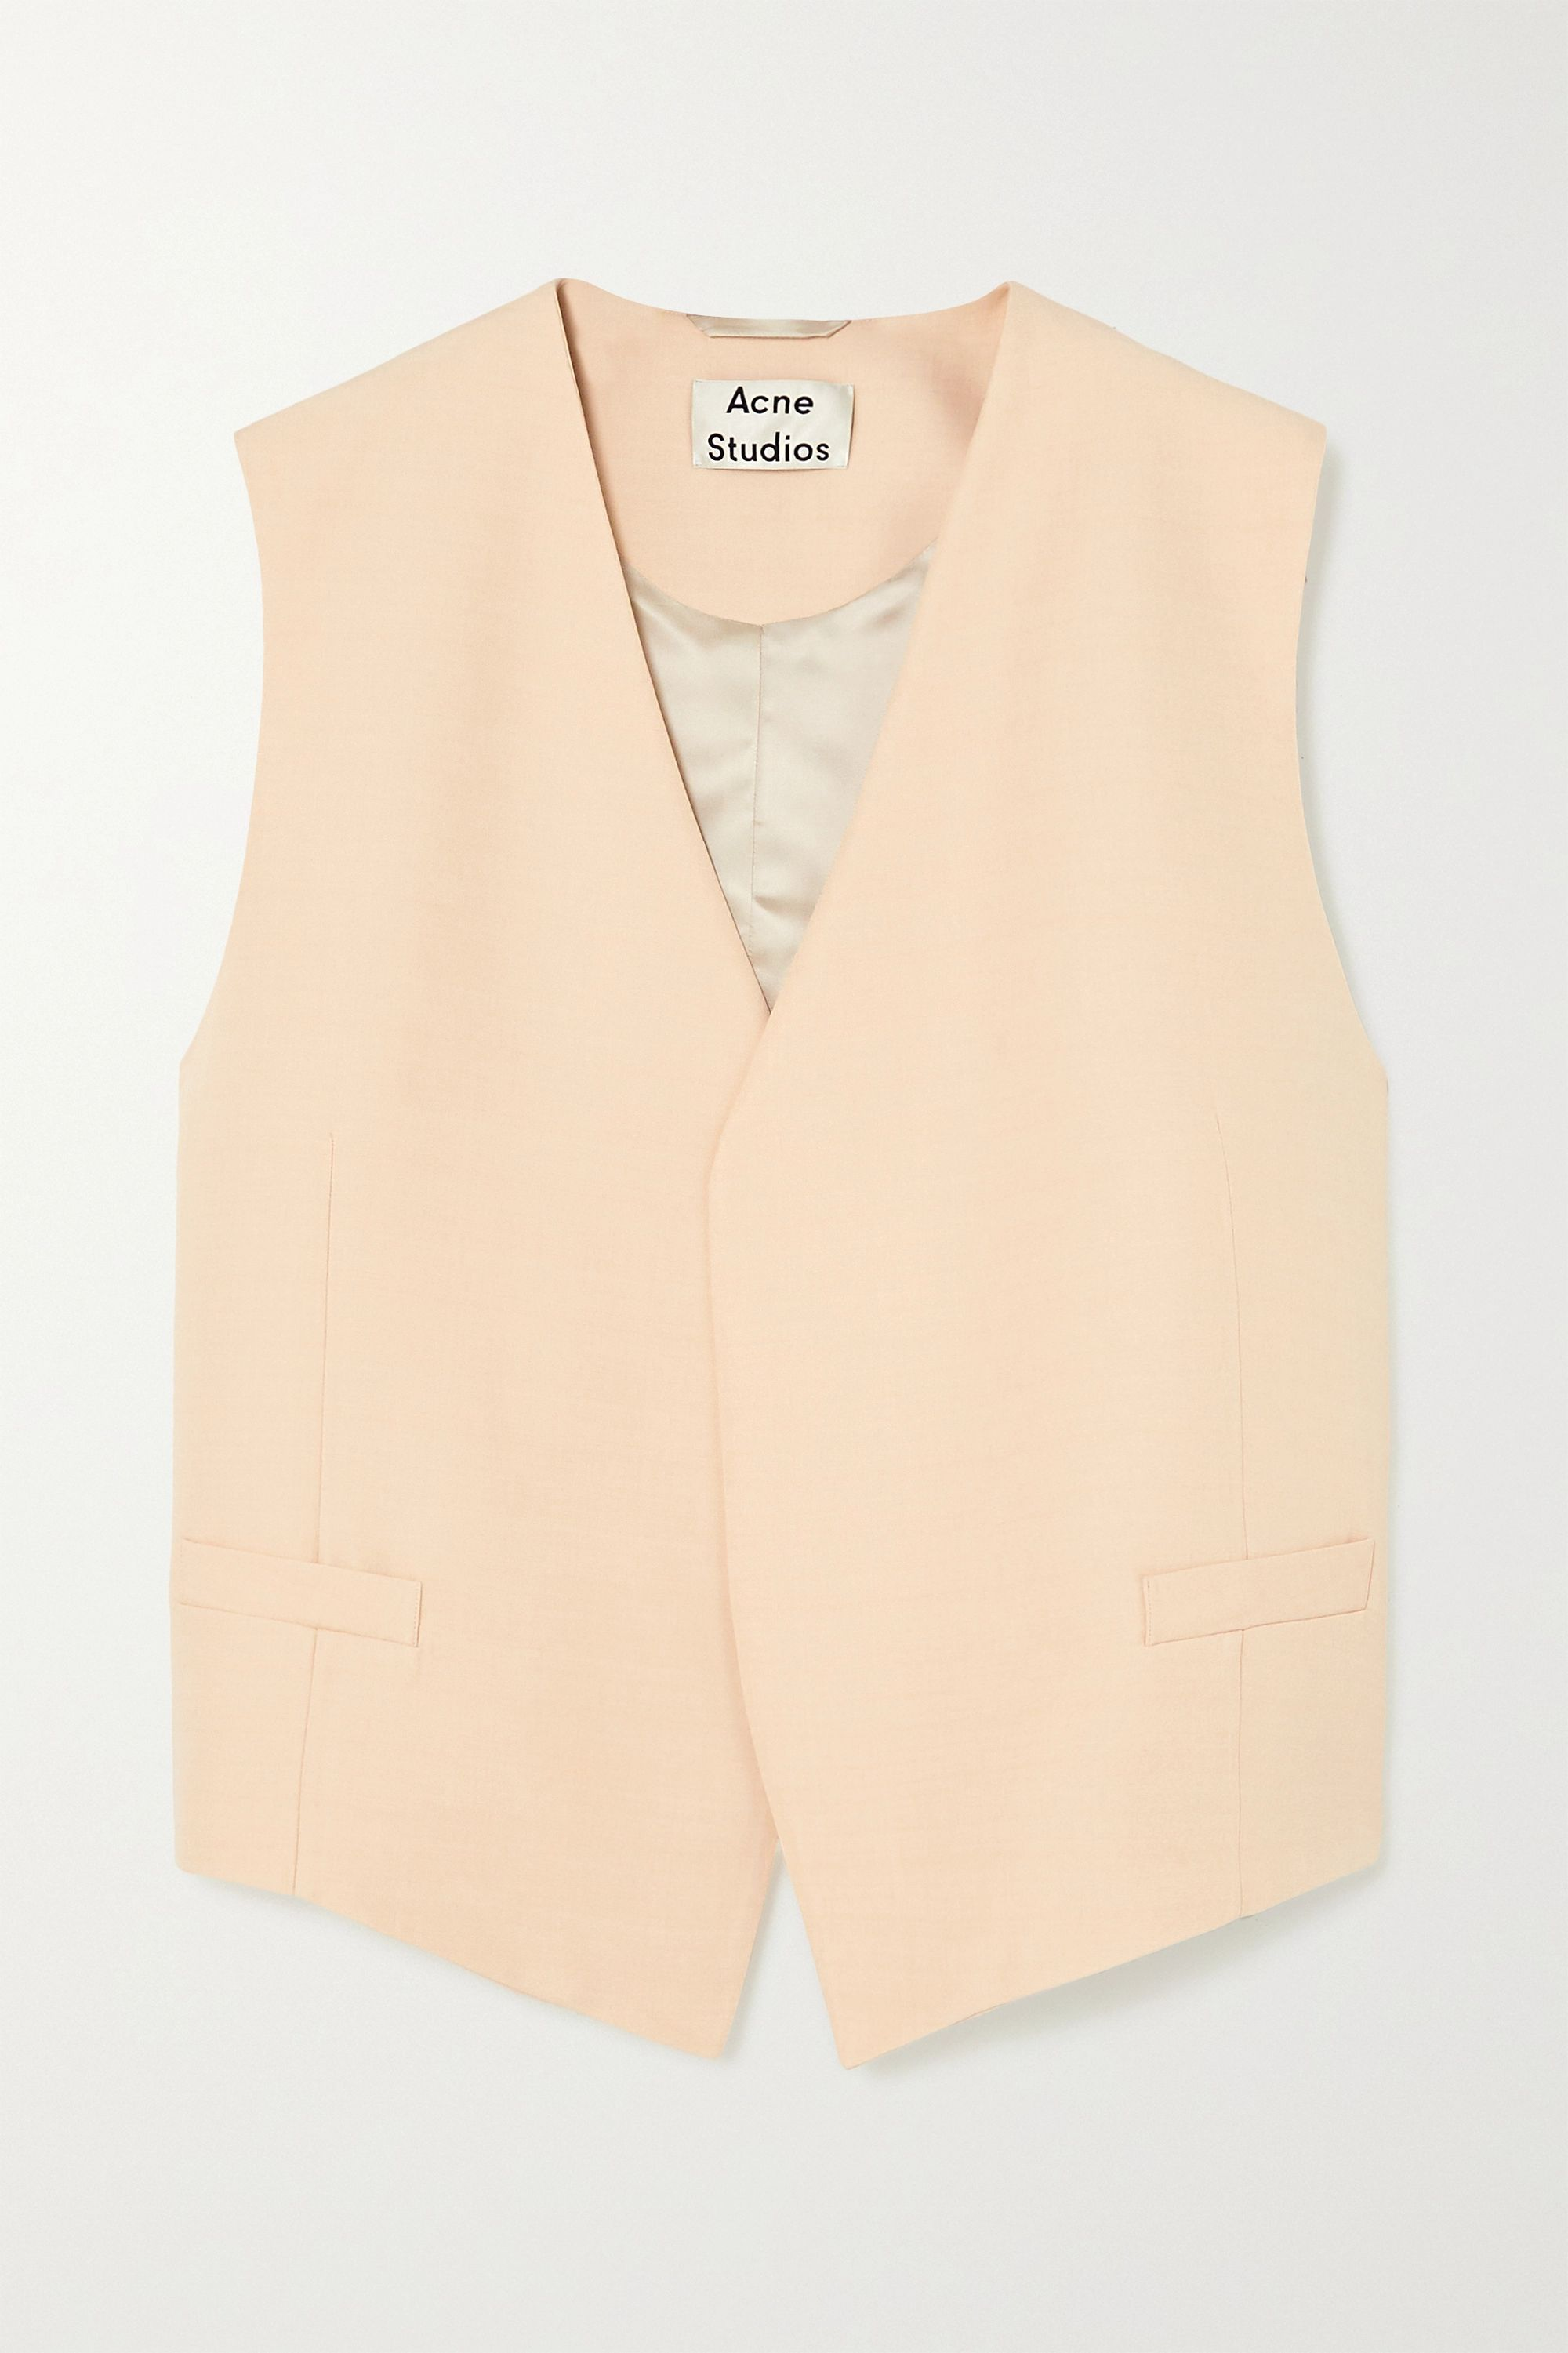 Acne Studios Zip-detailed woven vest